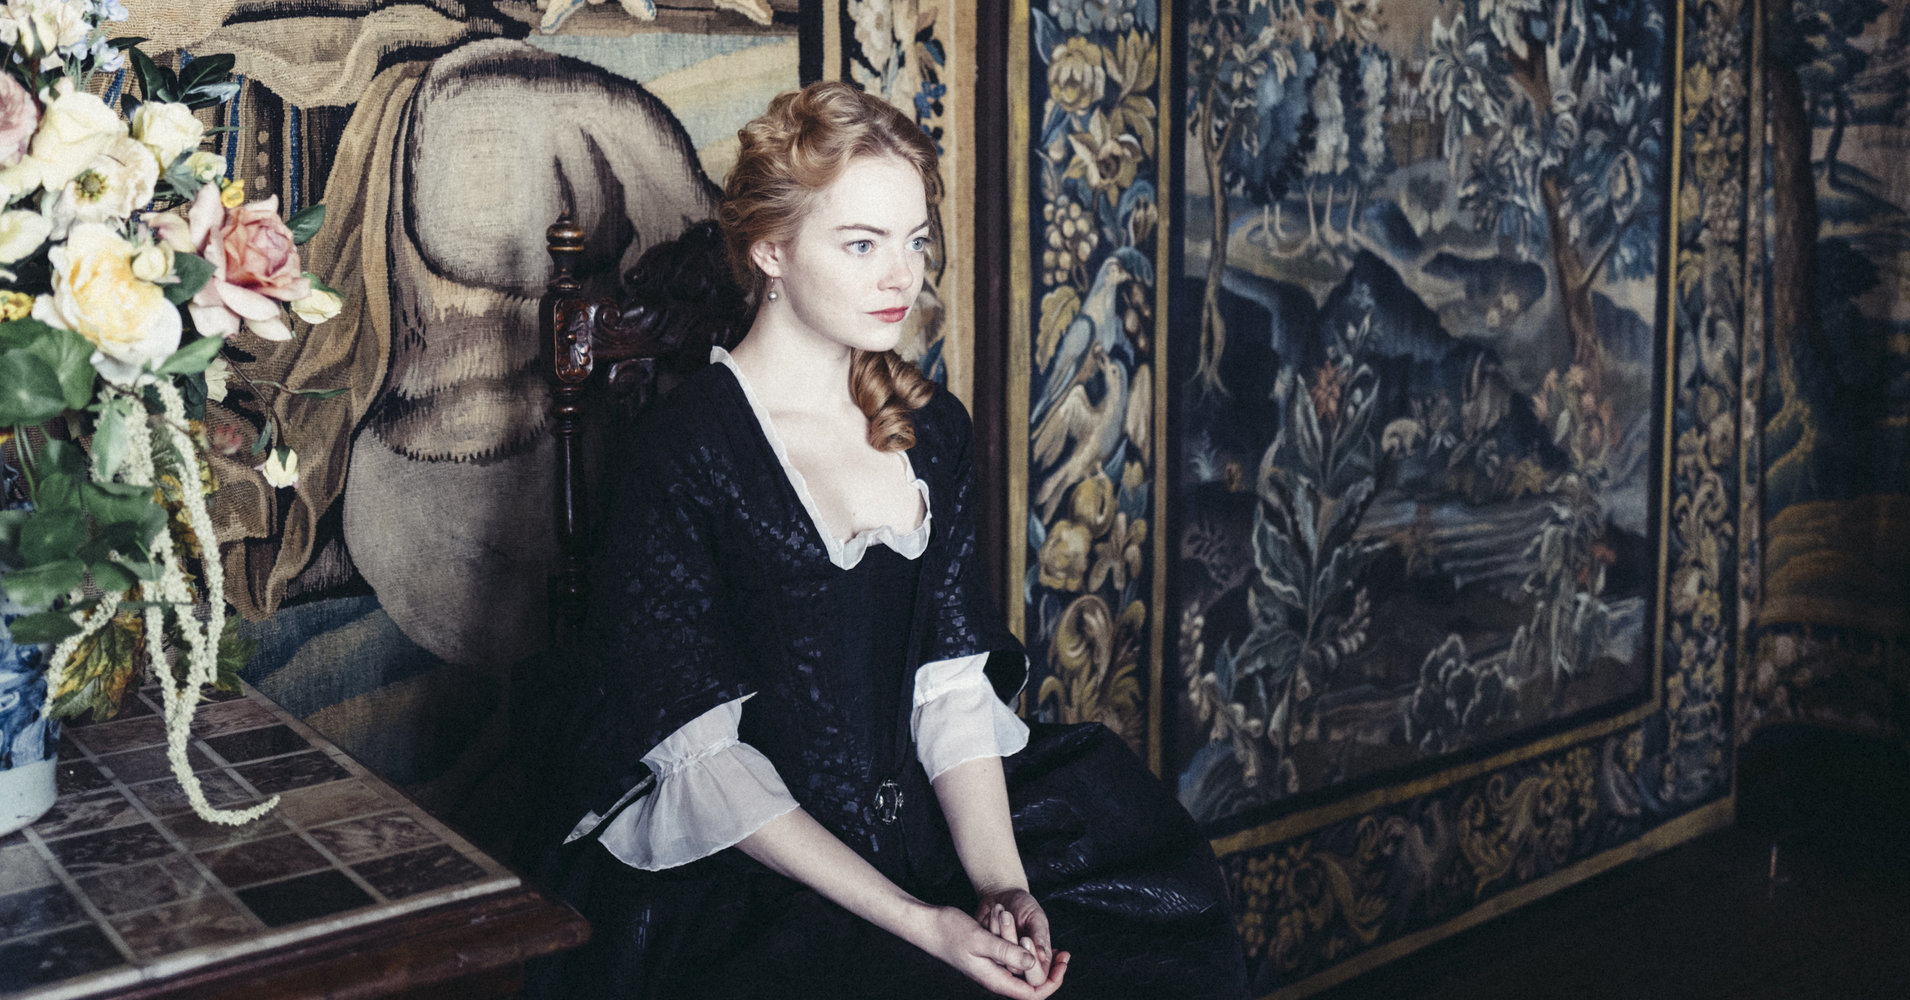 Tart And Hilarious, 'The Favourite' Is One Of The Year's Best Movies